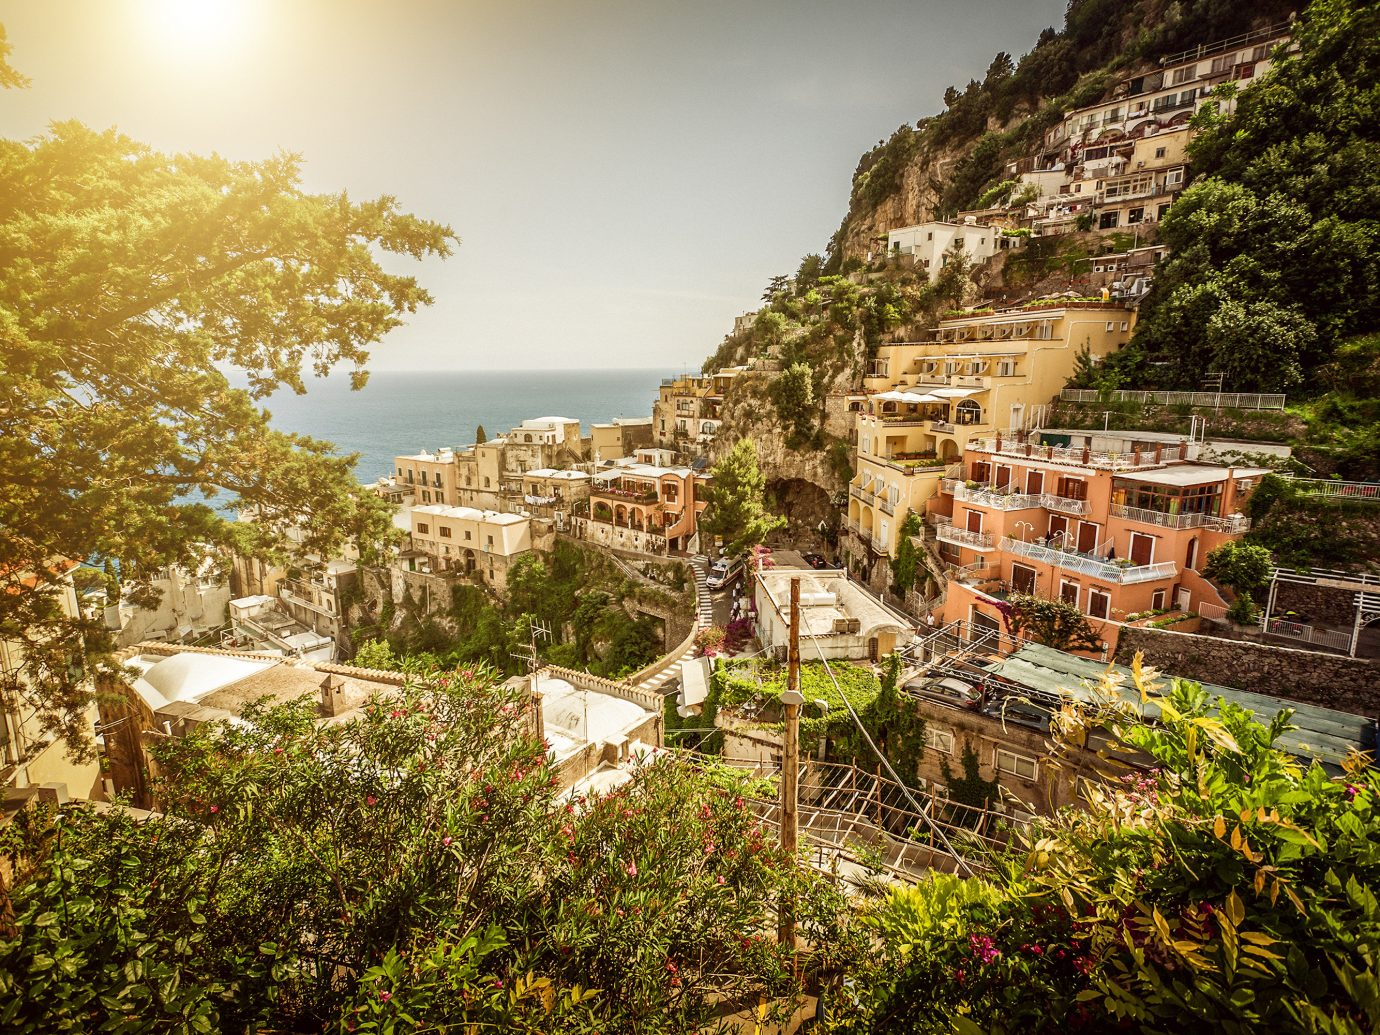 europe Outdoors + Adventure Trip Ideas tree outdoor sky Town Nature human settlement Village vacation rural area canyon landscape ancient history Ruins flower hillside lush